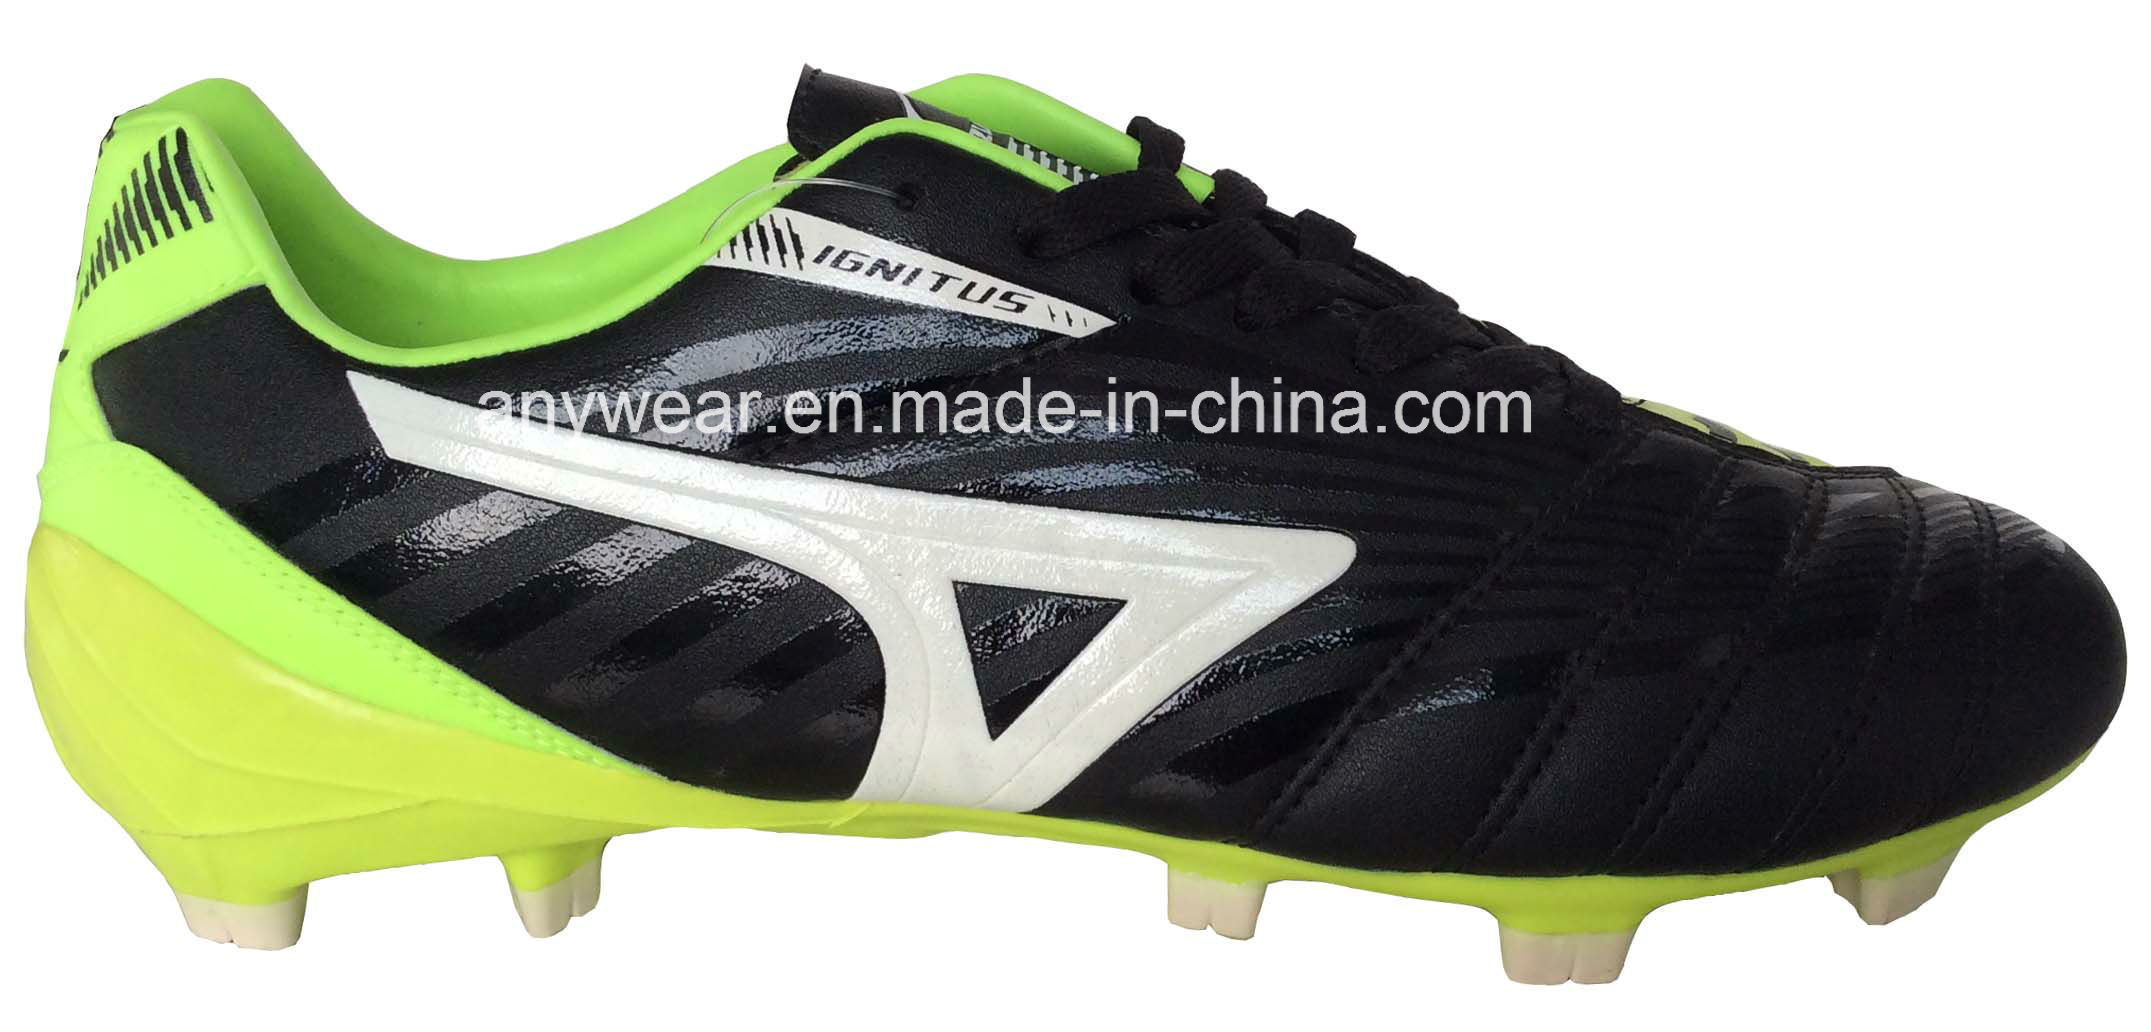 8bd1c4f84 China Men Outdoor Sports Football Boots Soccer Shoes (815-9461 ...